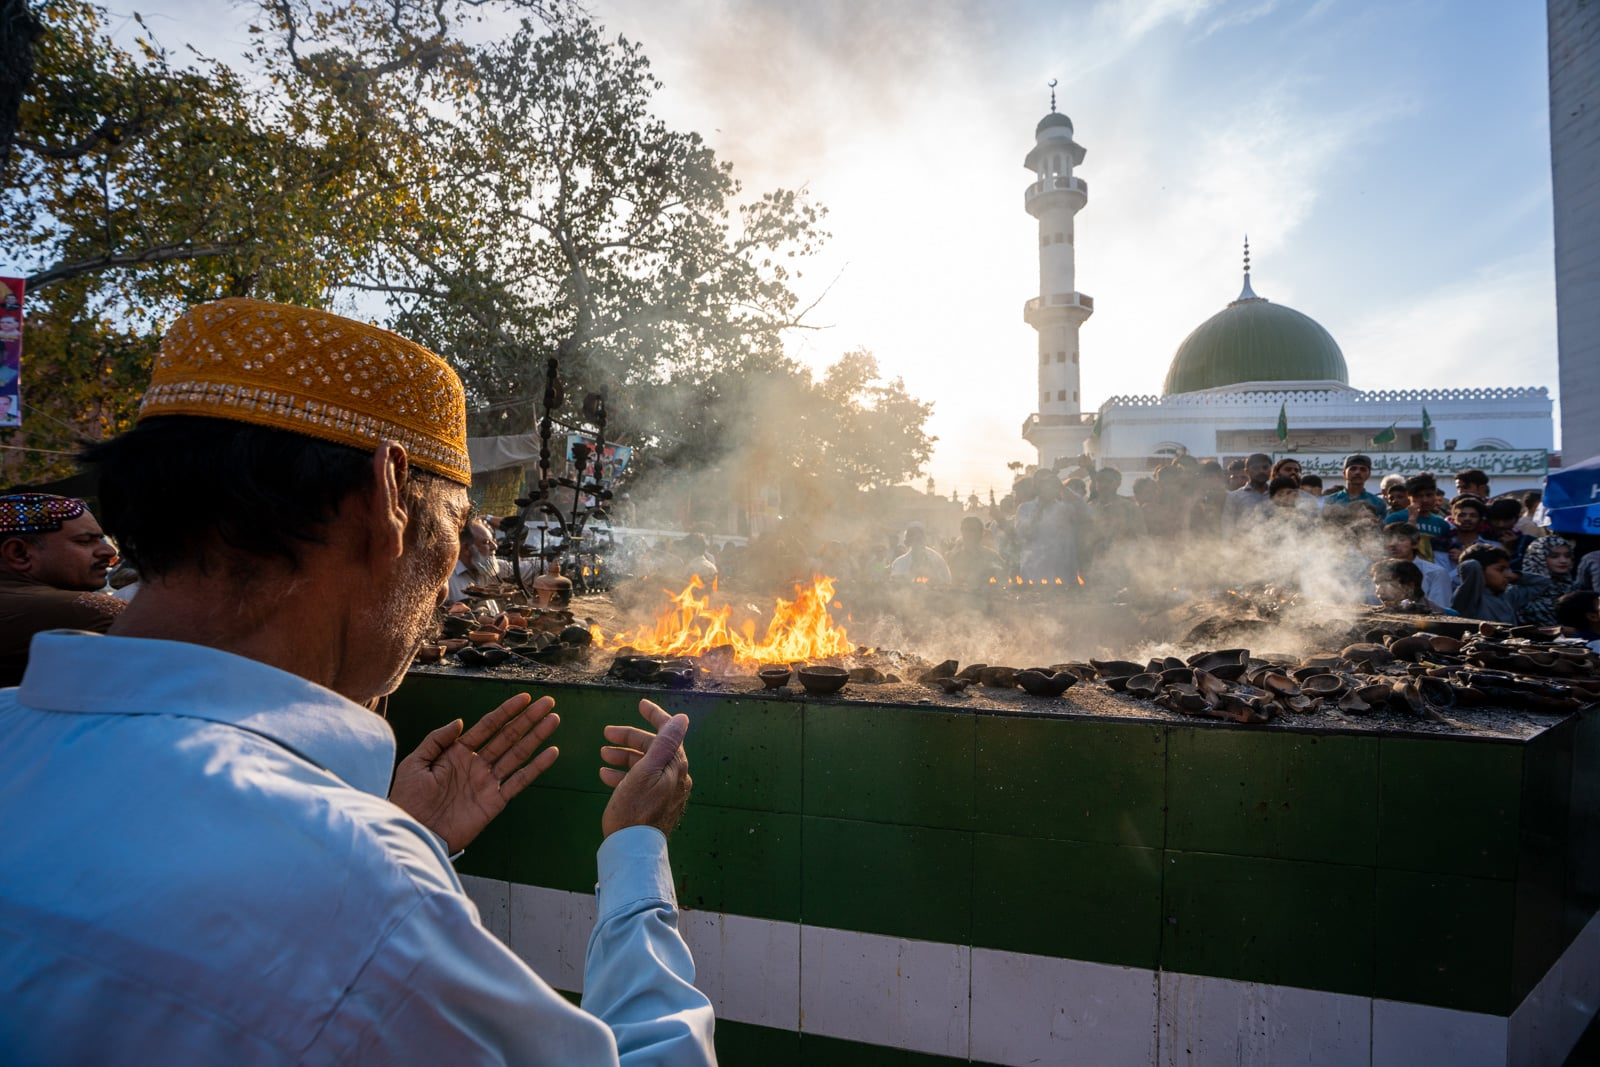 Practical Pakistan travel guide - a man praying at a Sufi shrine in Lahore